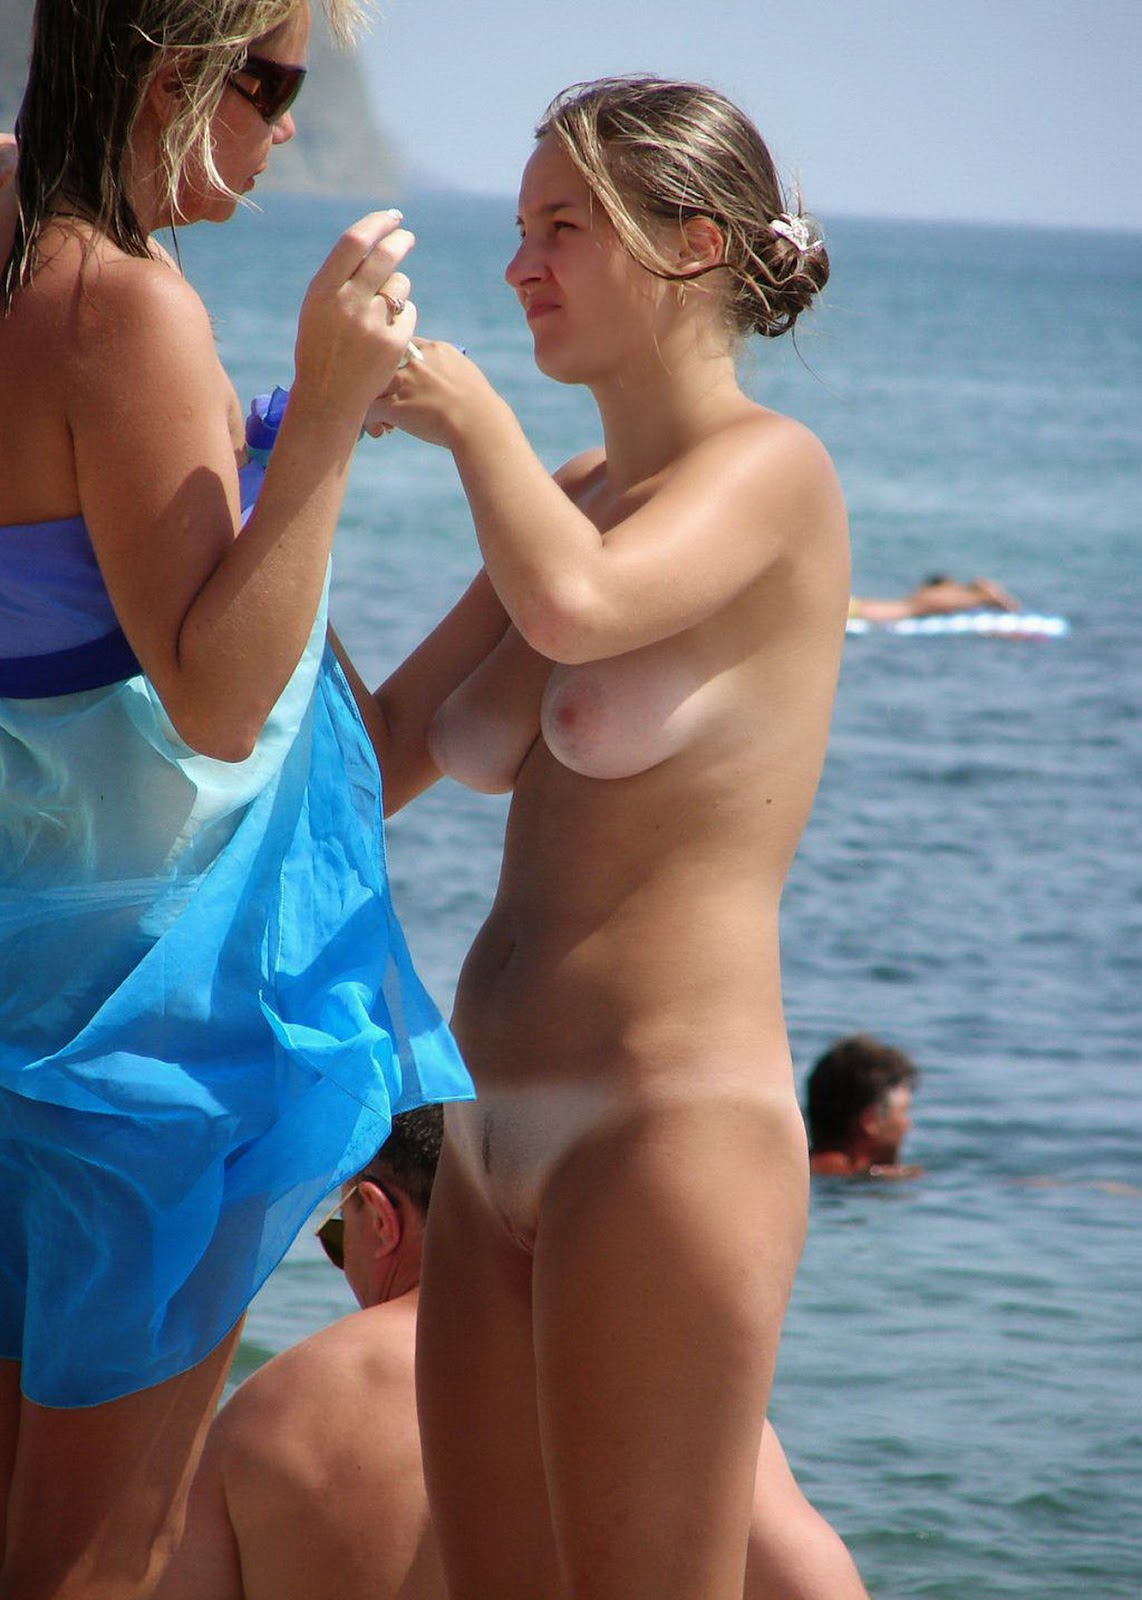 The incorrect Tanlines miss junior nudist the excellent